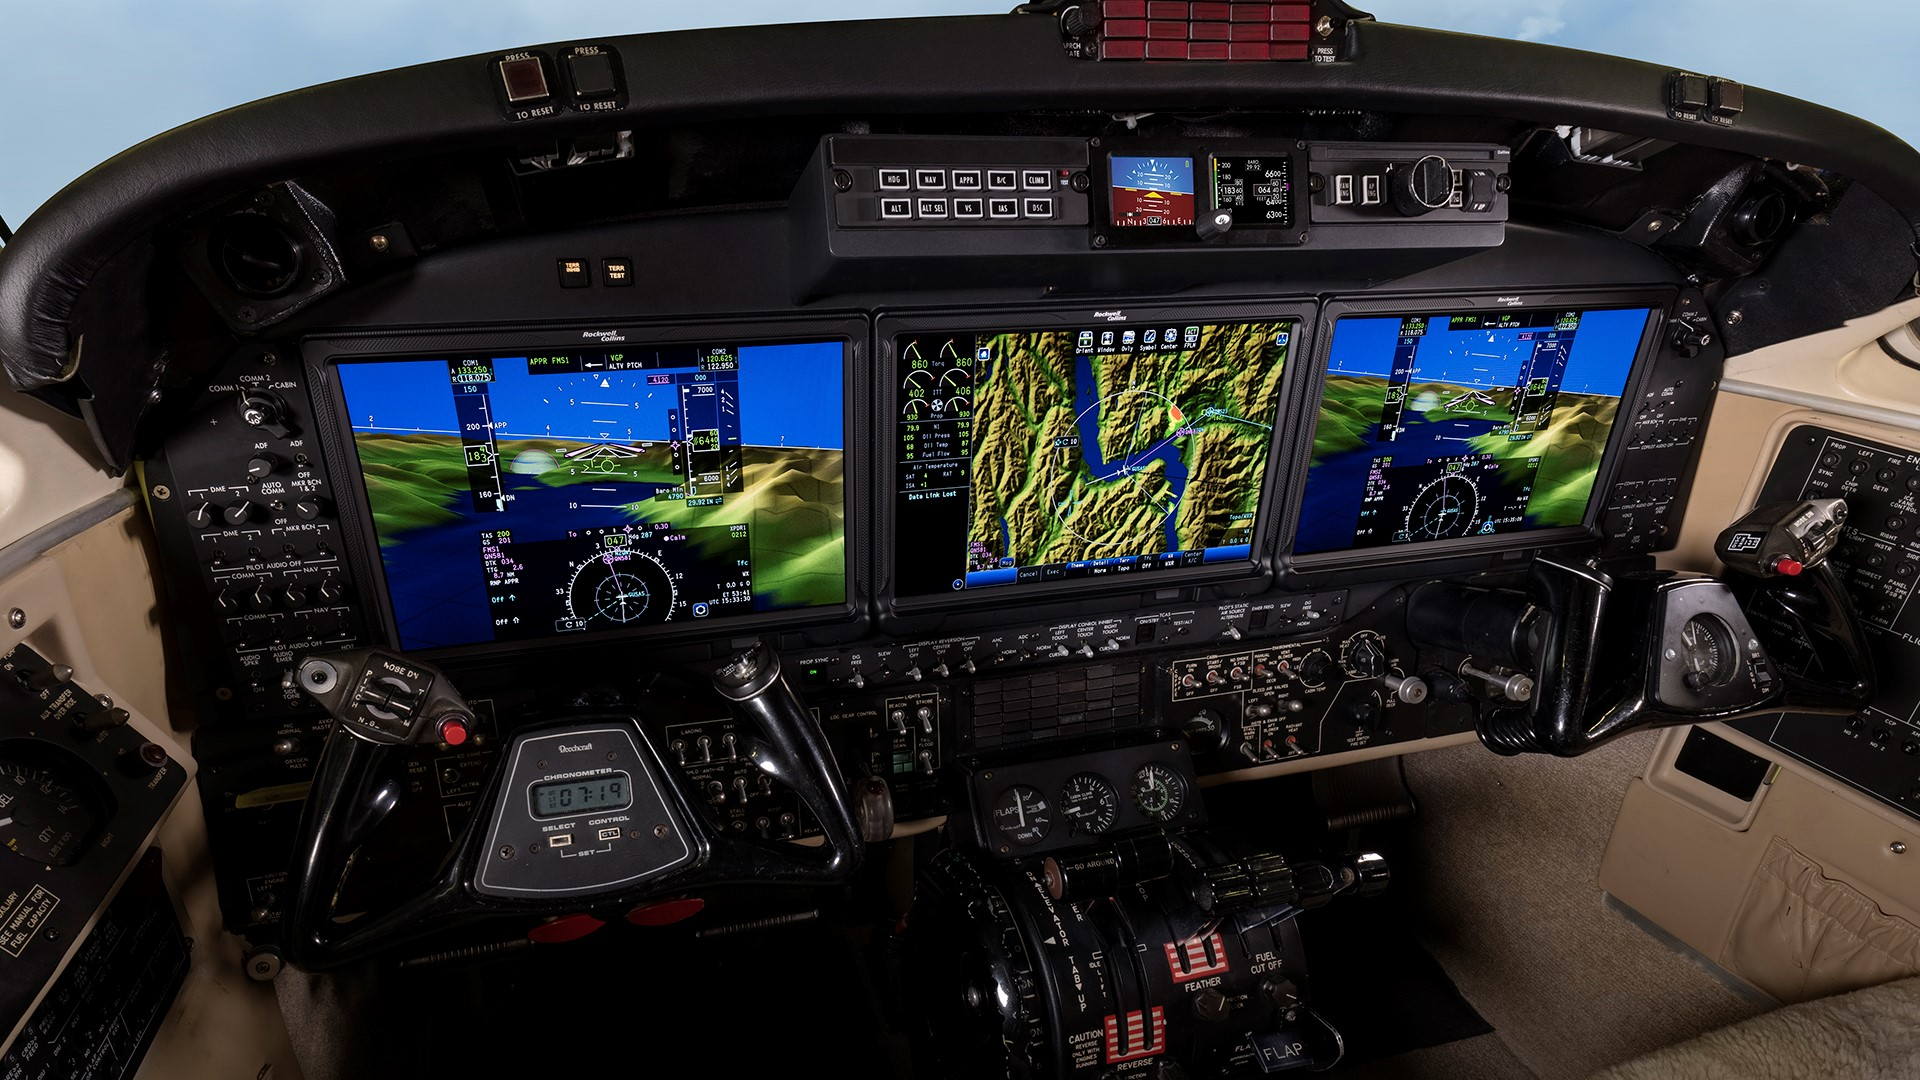 Integrated Avionics System